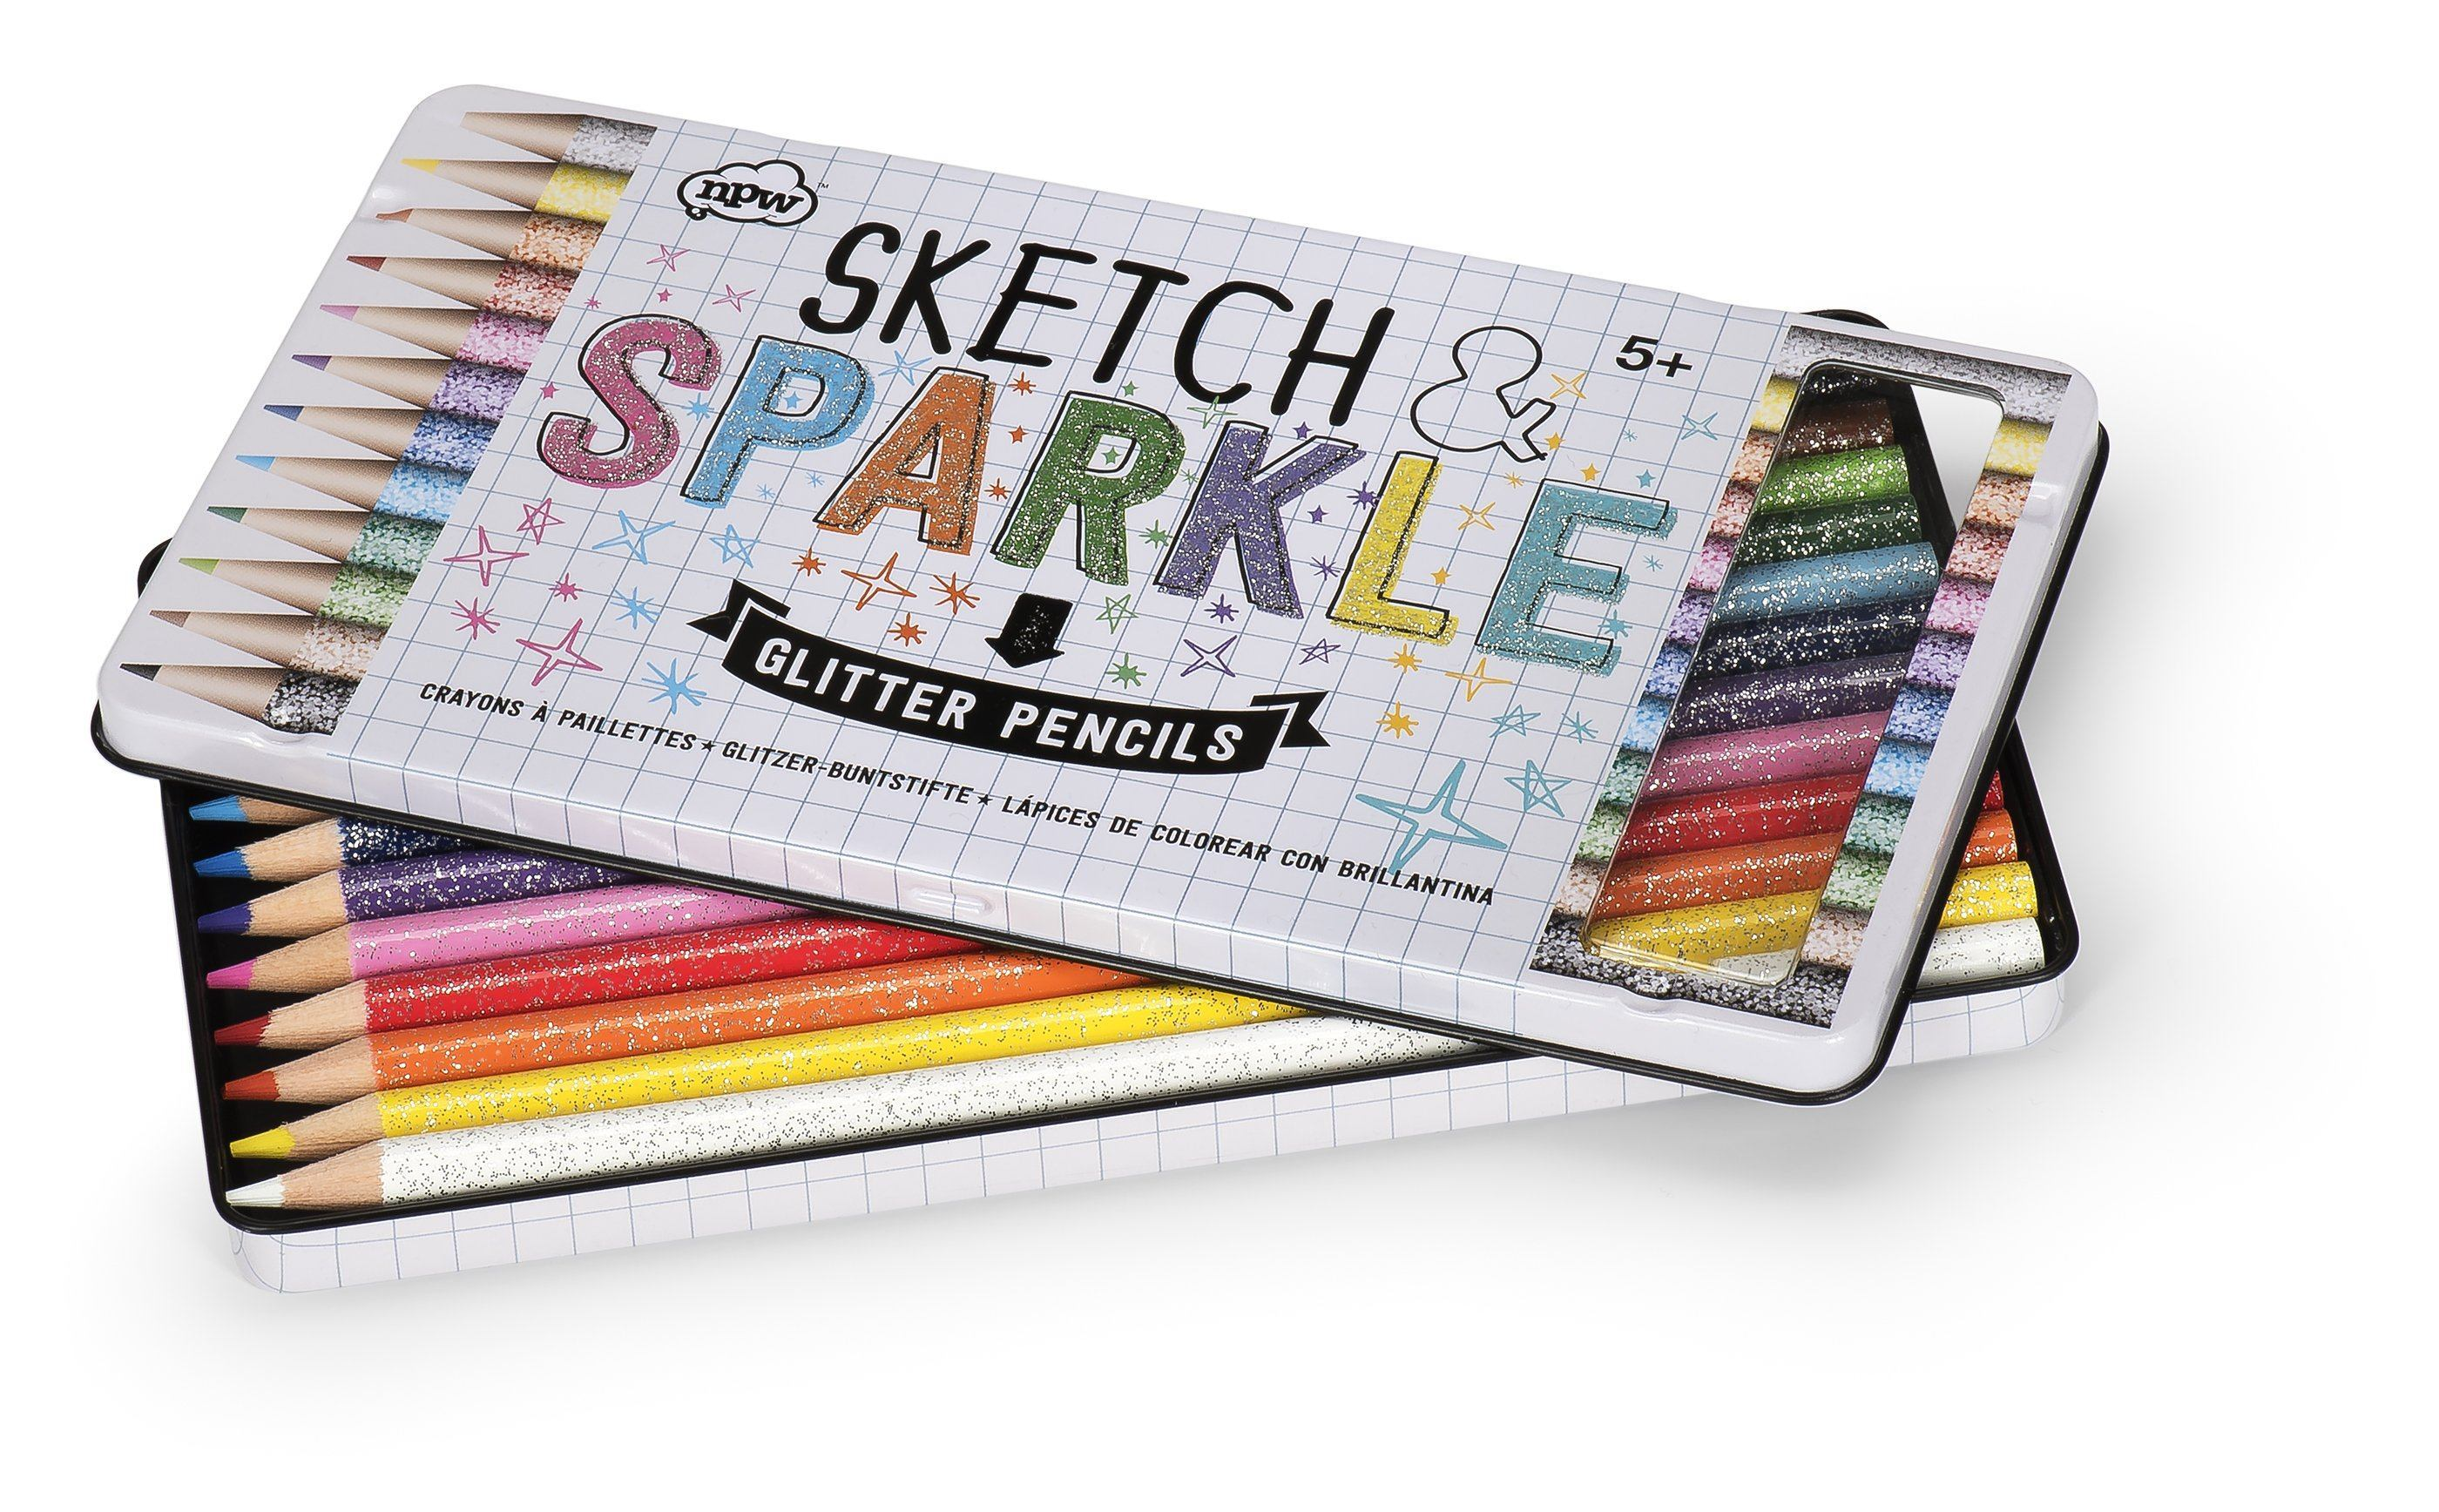 Sketch & Sparkle glitter pencils